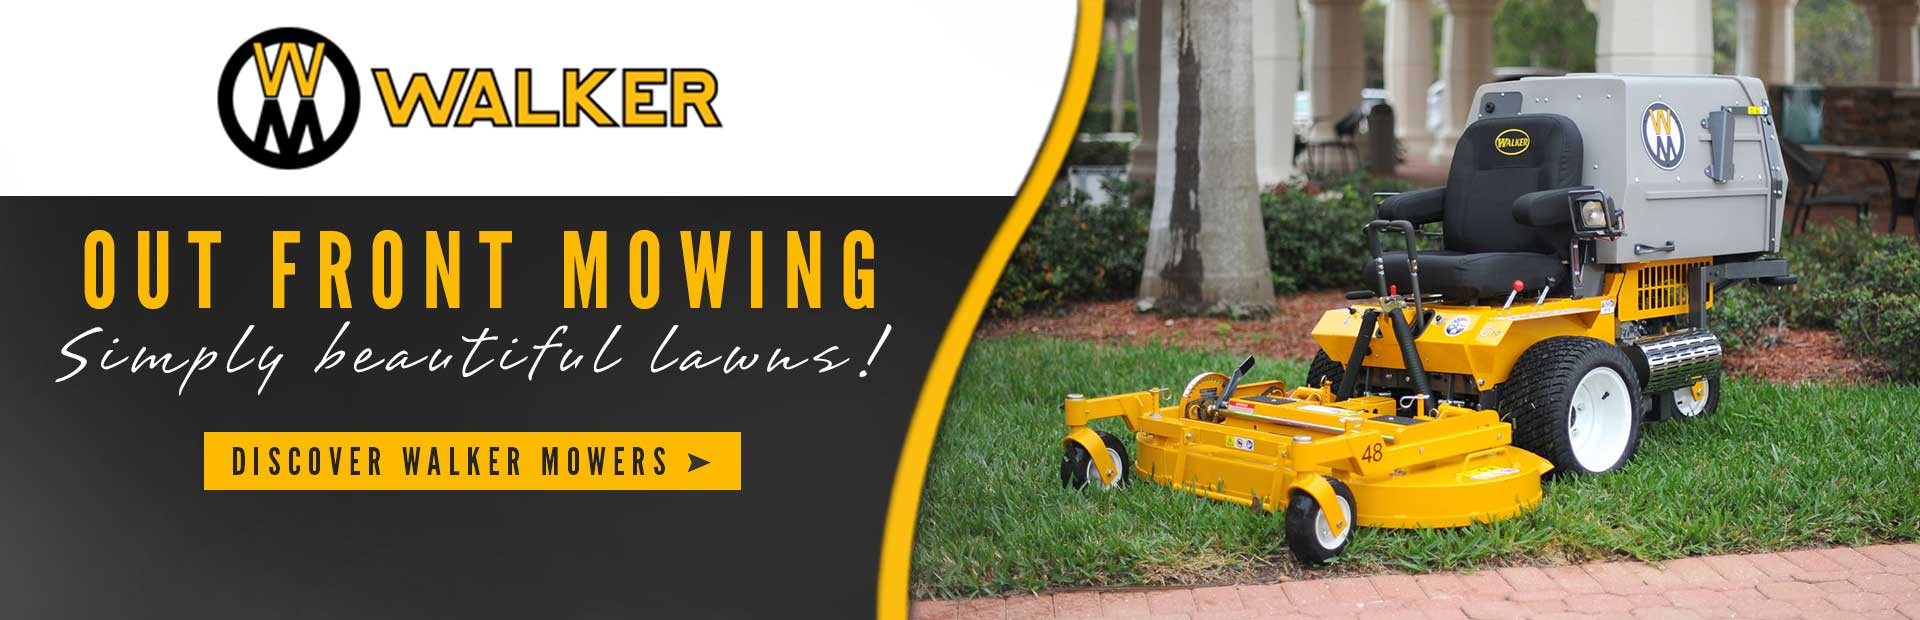 Click here to discover Walker Mowers.